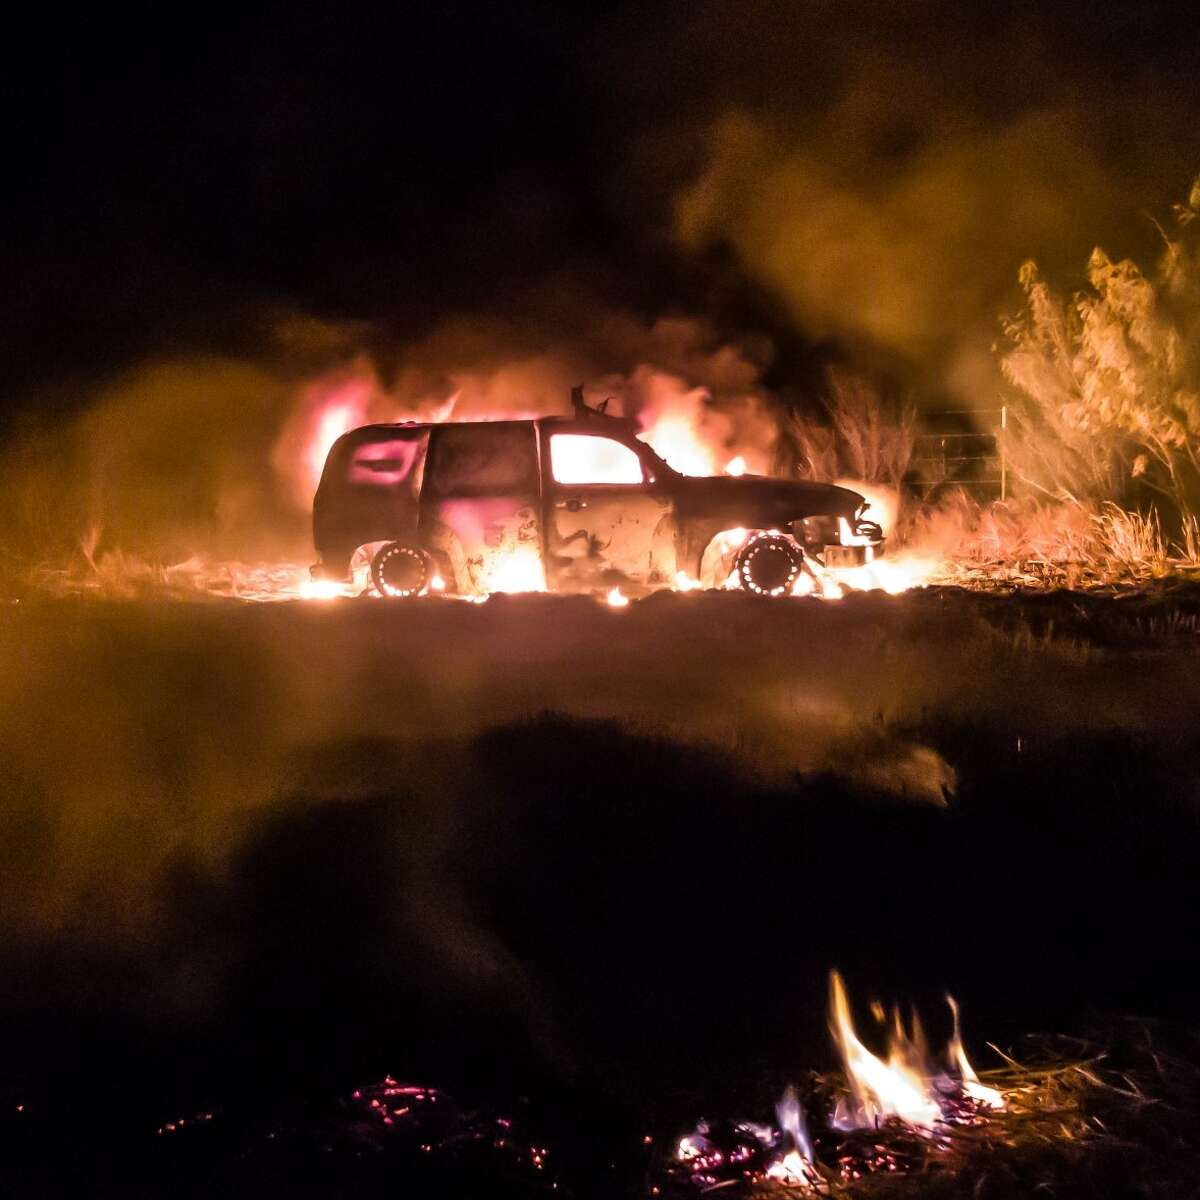 U.S. Border Patrol agents said they stopped a human smuggling attempt and rescued people from this vehicle on fire.